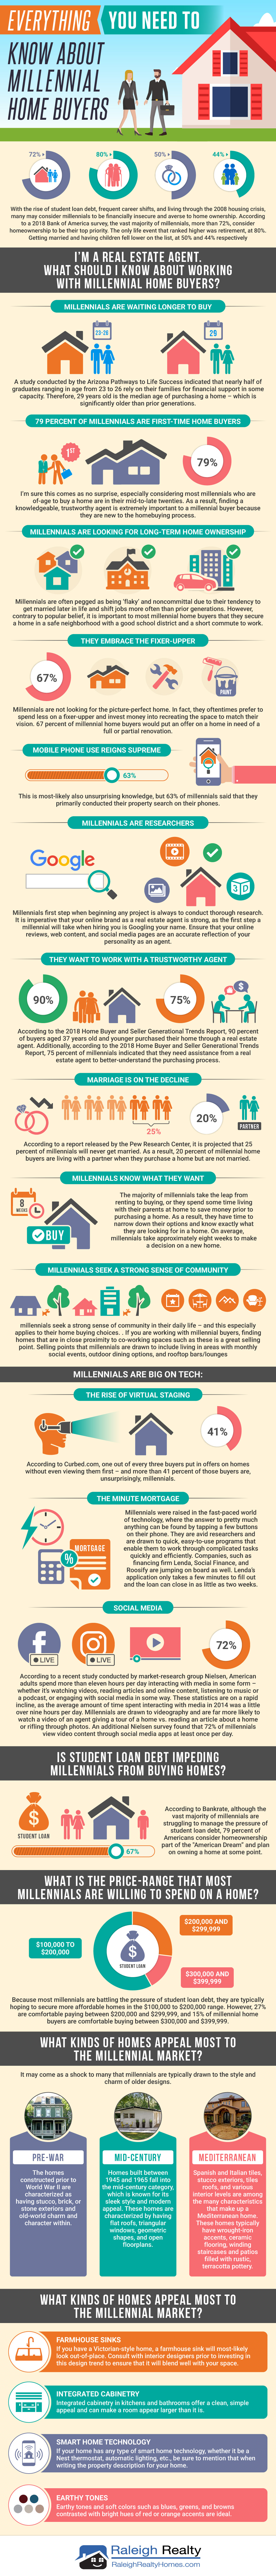 Everything You Need to Know About Millennial Home Buyers 2019